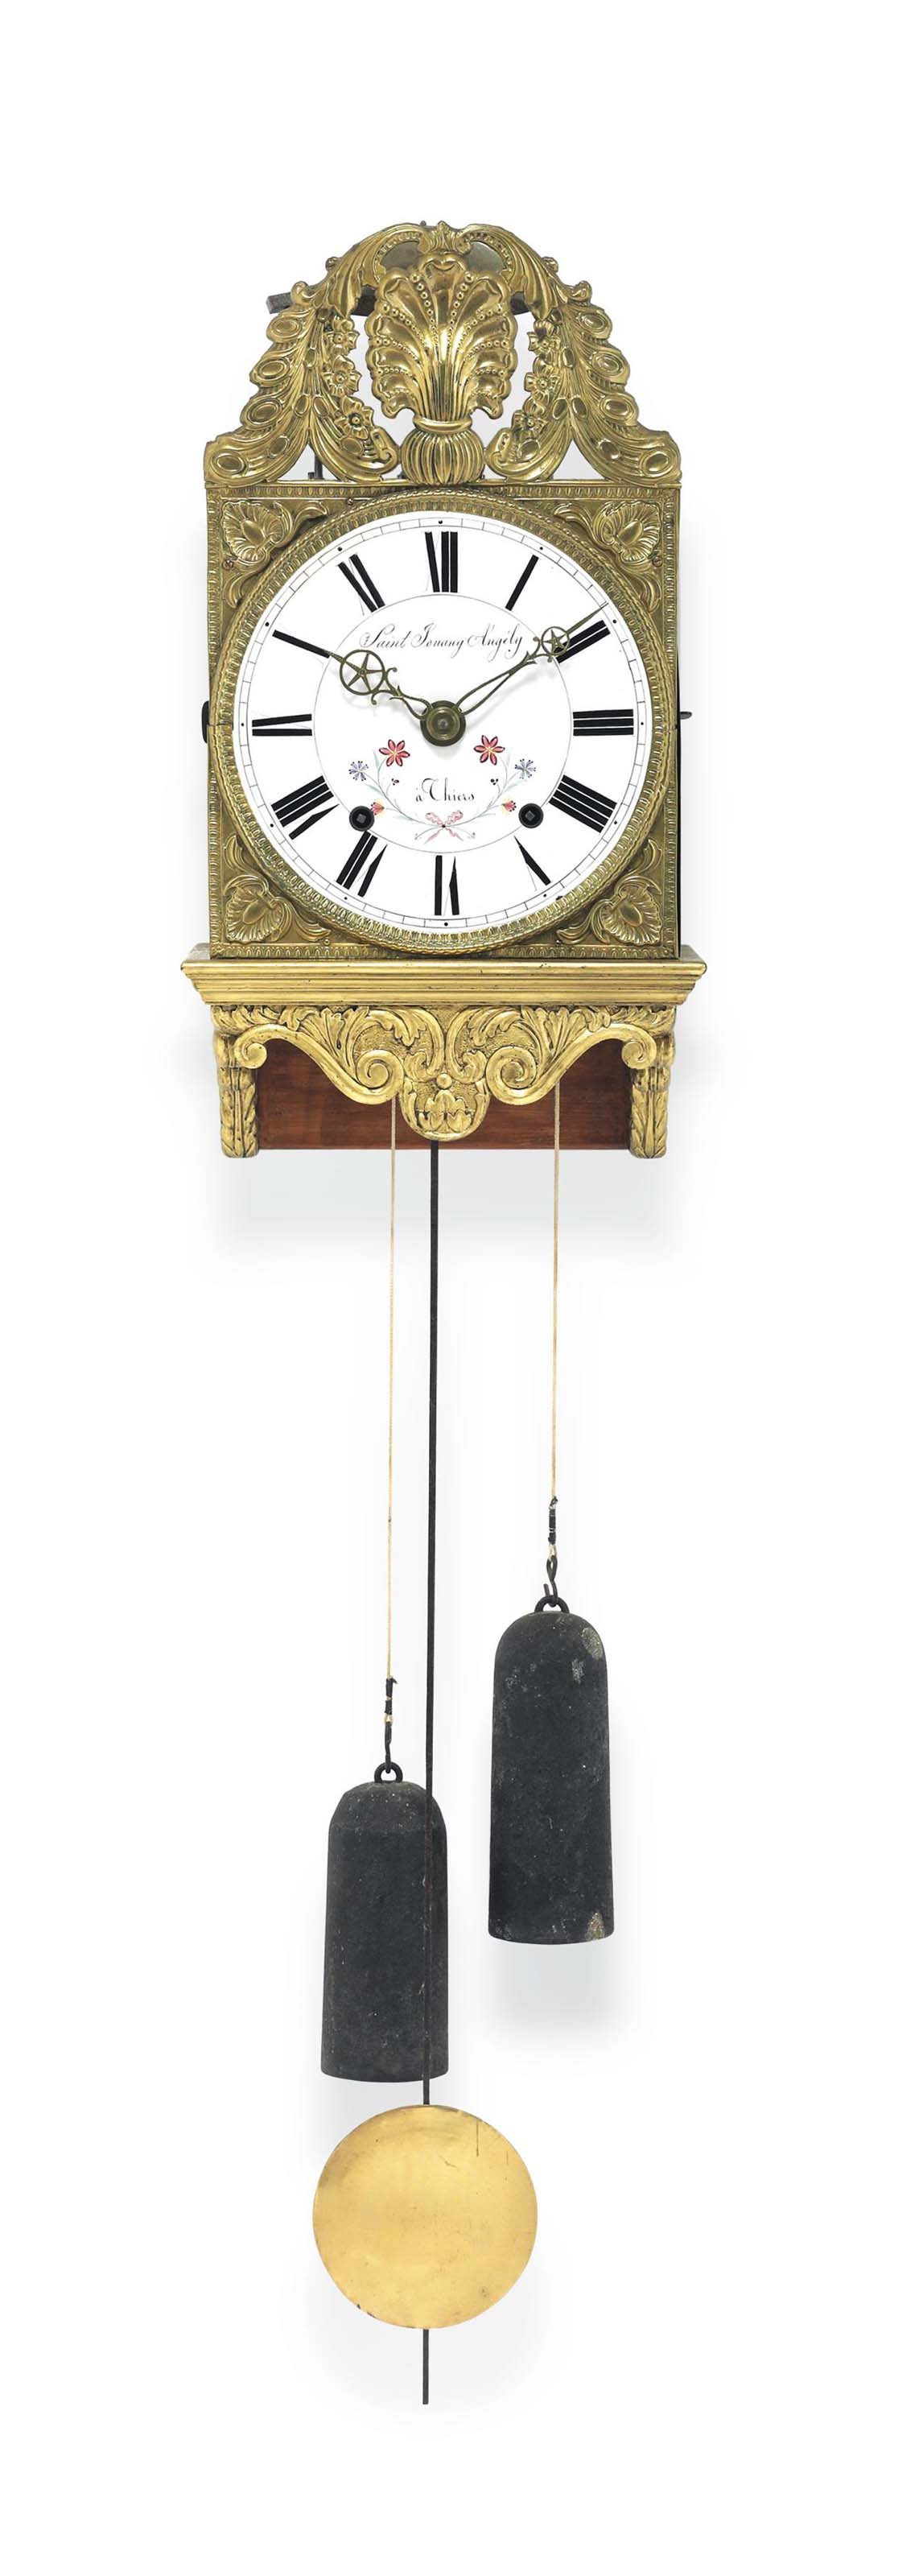 A FRENCH GILTWOOD WEIGHT-DRIVE